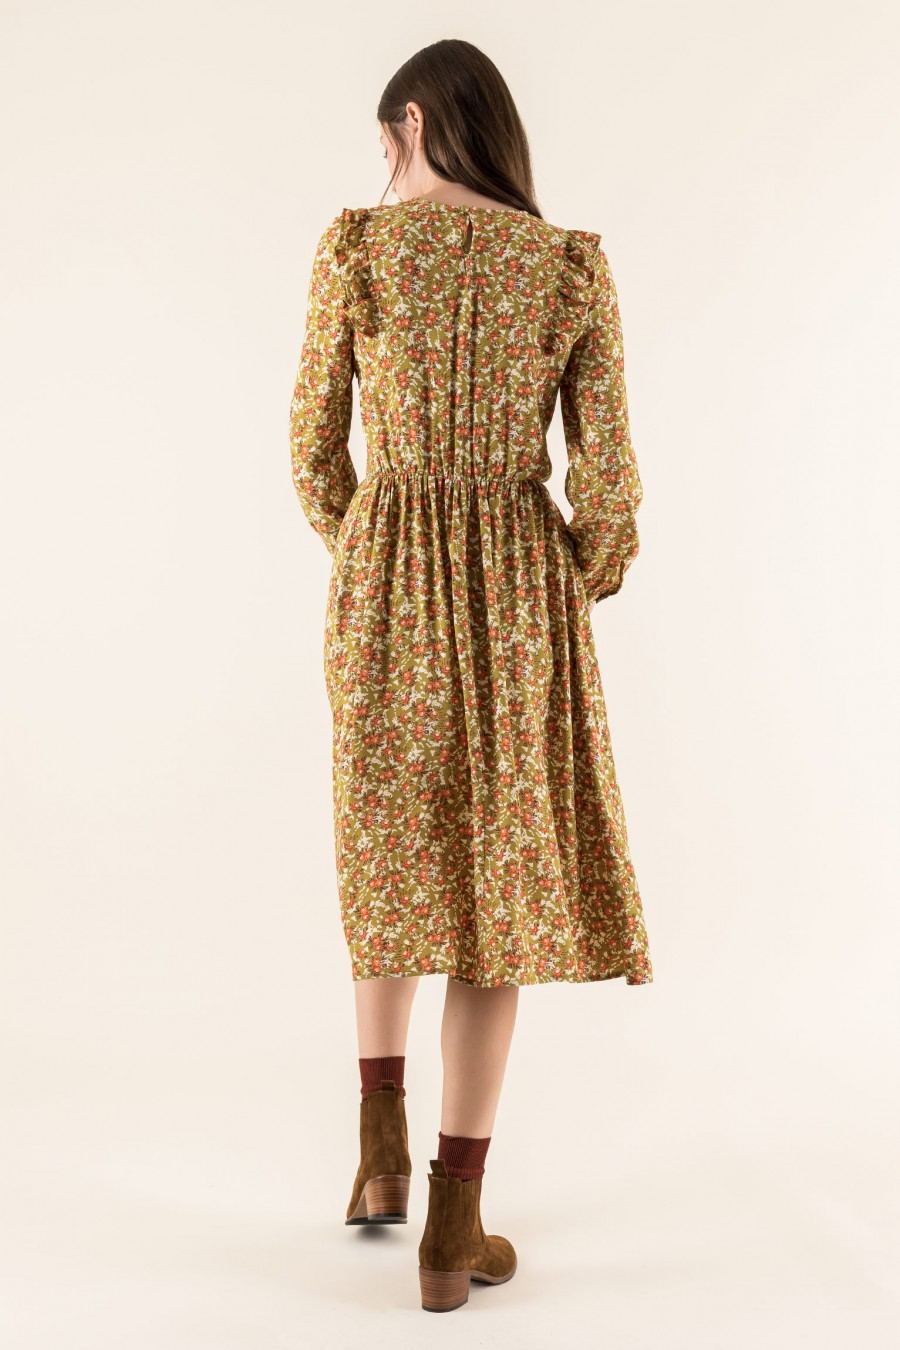 Mustard dress with flowers print